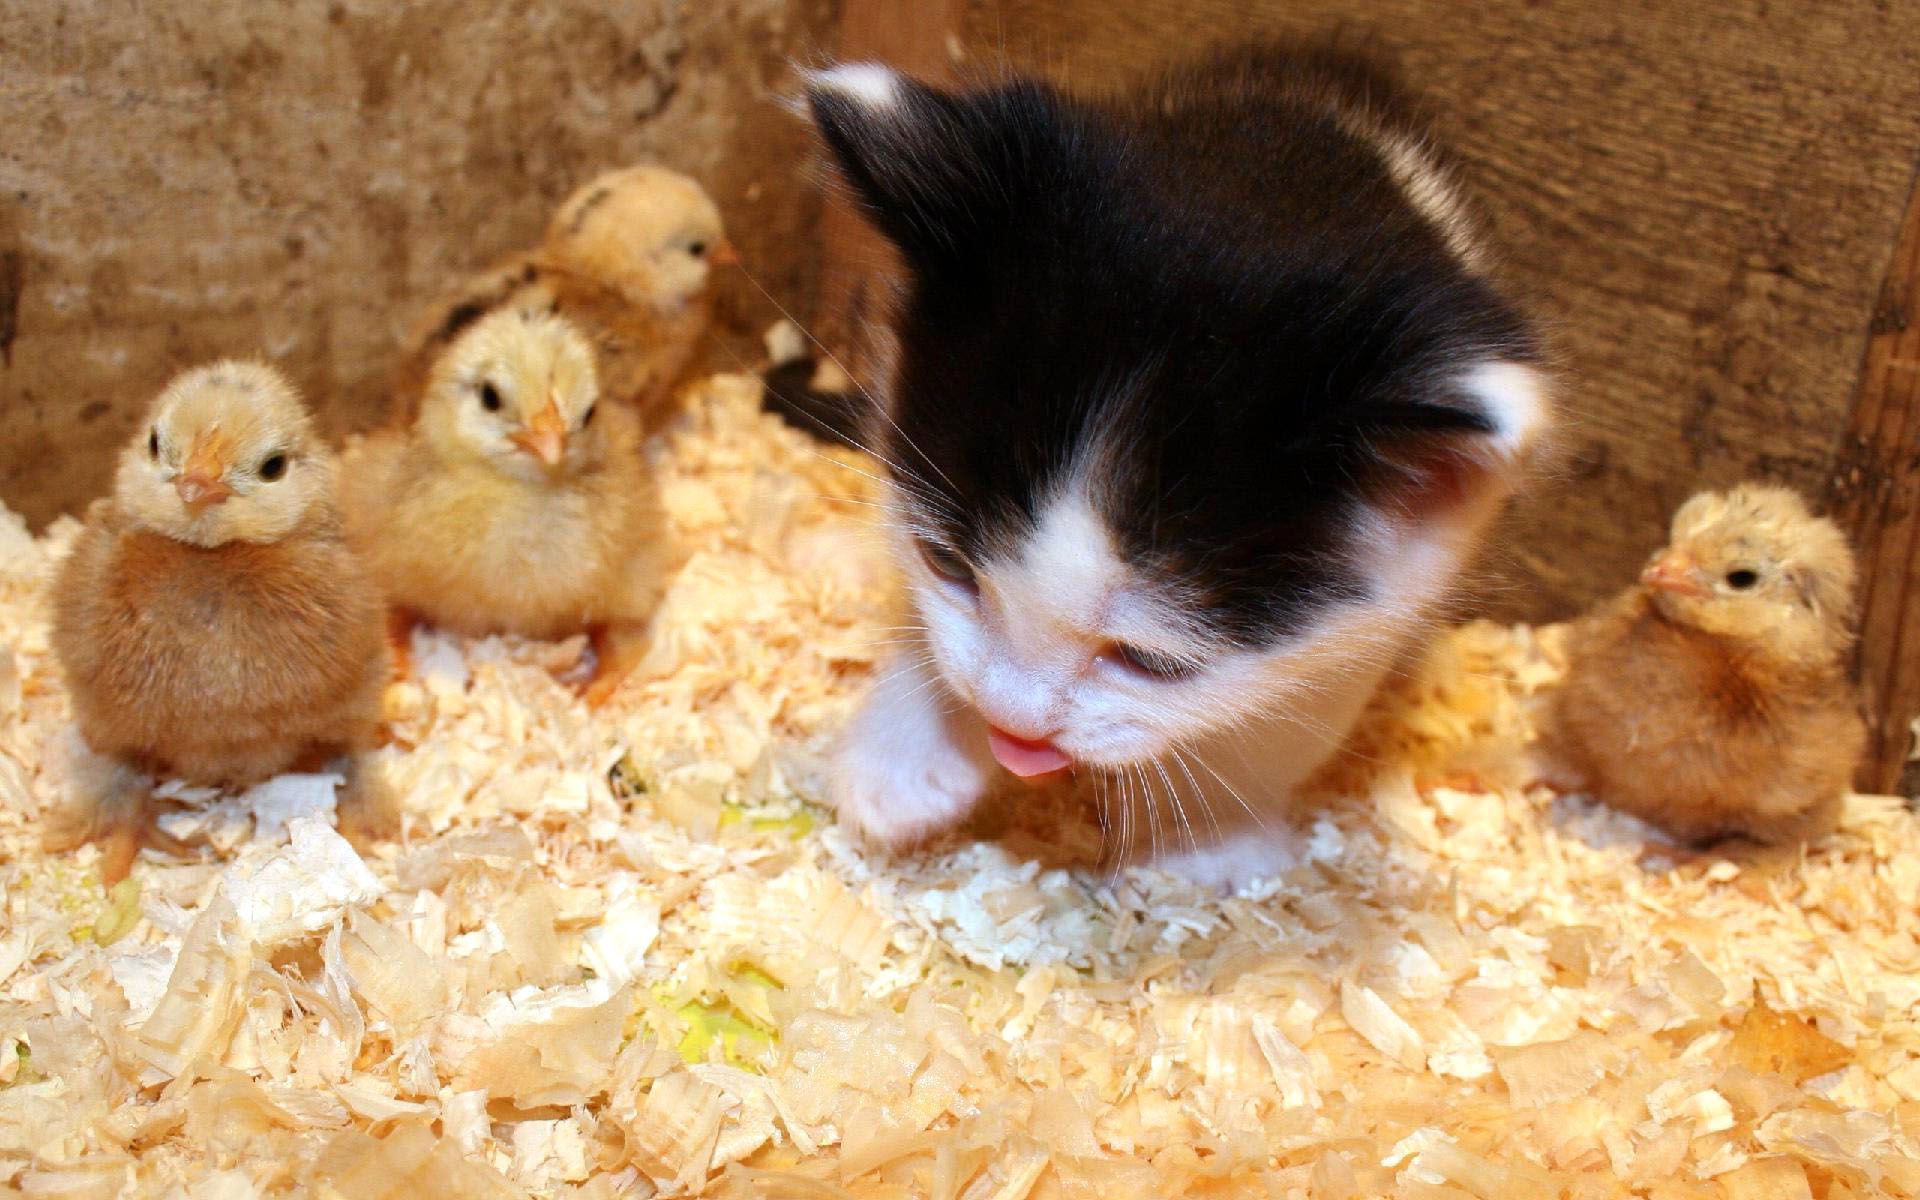 Baby Cat With Baby Ducks | Simply Wallpaper - Just choose and download